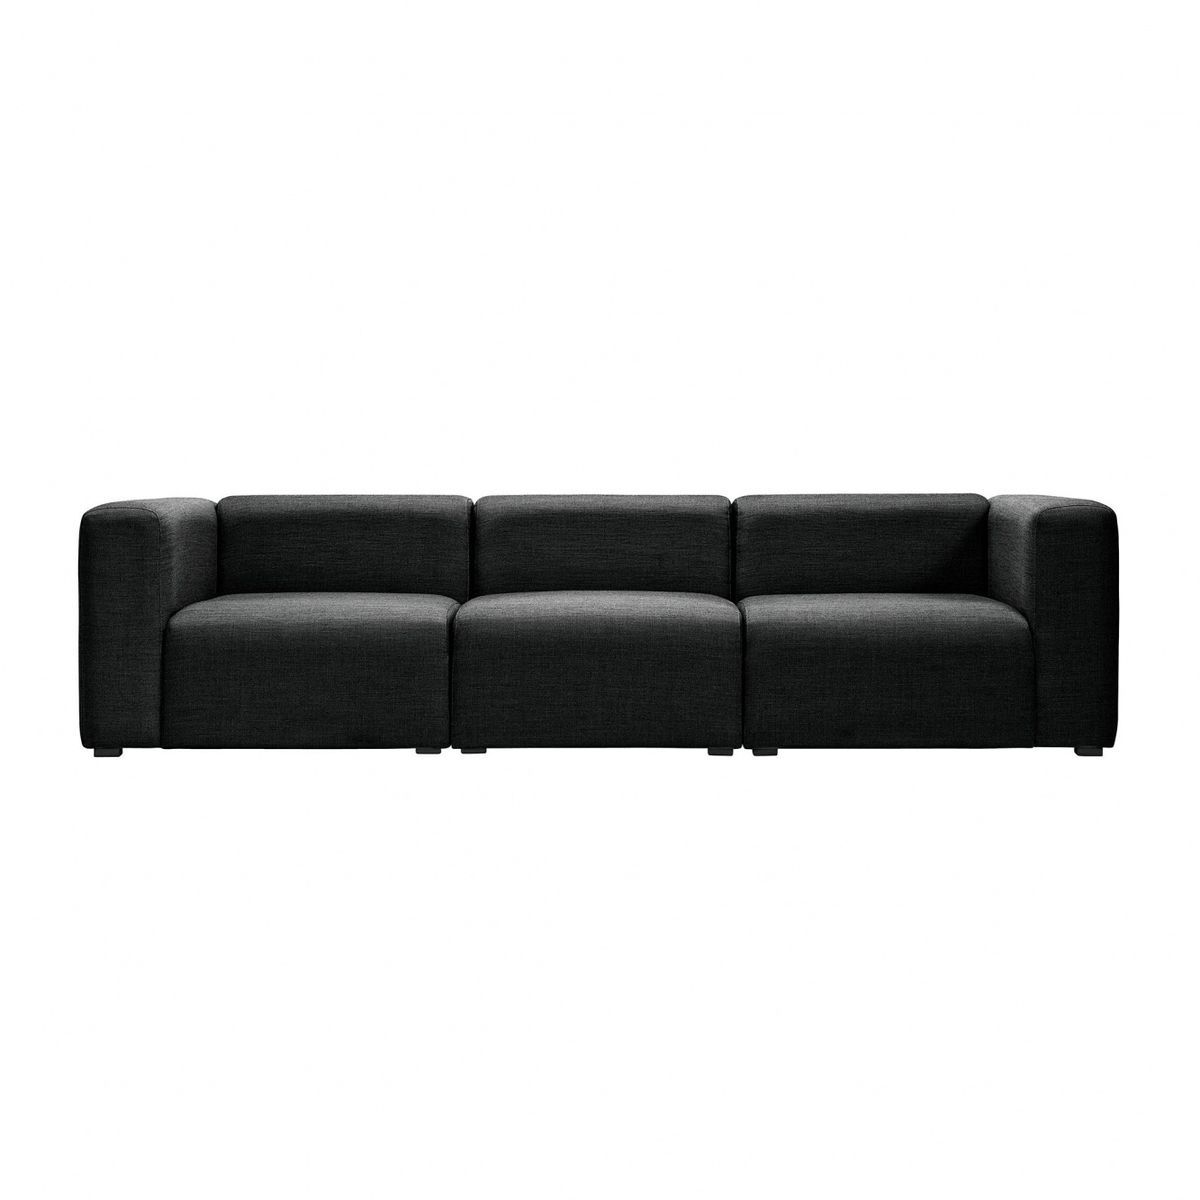 mags 3 seater sofa fabric surface hay sofas seating furniture furniture. Black Bedroom Furniture Sets. Home Design Ideas